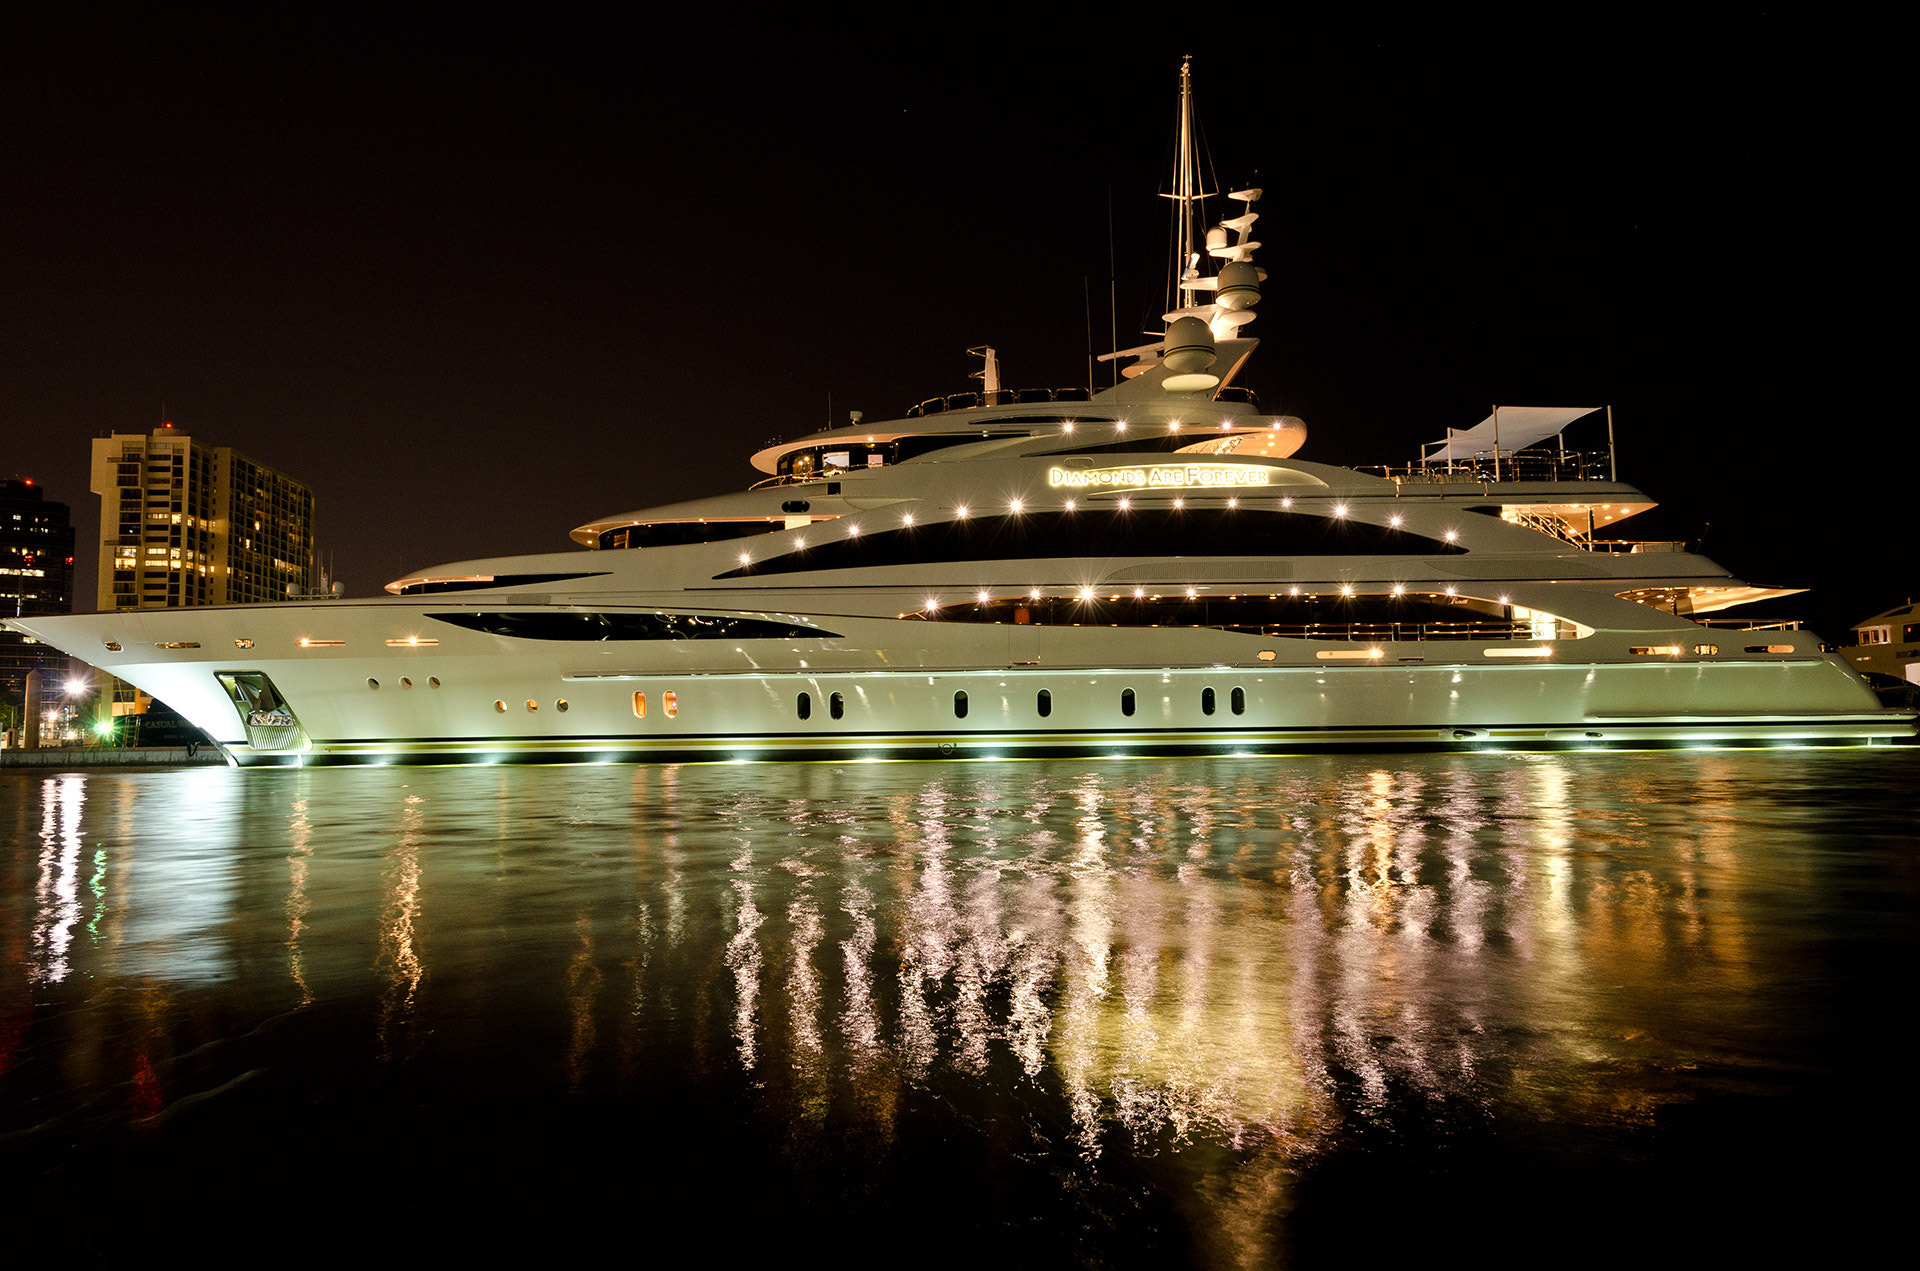 Photograph Luxury Yacht by Eugen Winschel on 500px